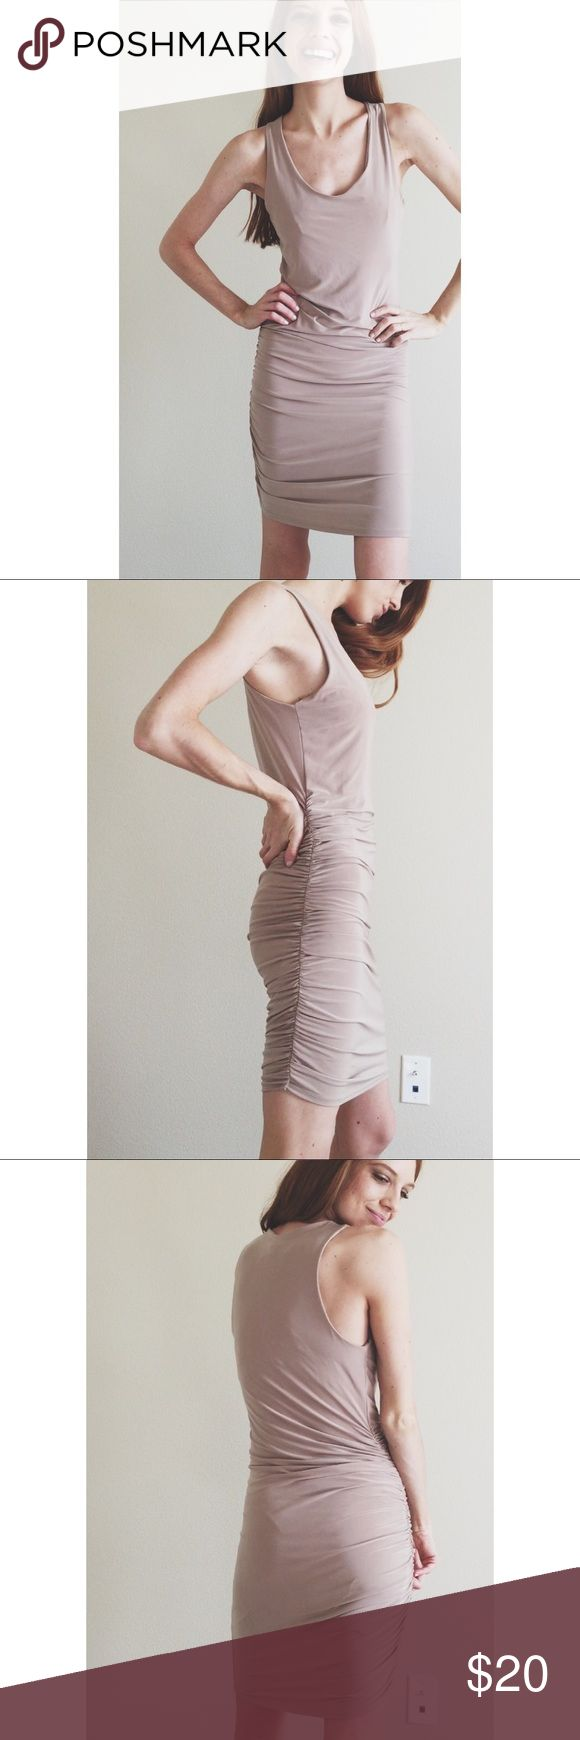 Nude Bodycon Dress This nude bodycon dress has ruching up the side that adds a little something special to an otherwise ordinary dress :) it is lined, so you can wear it confidently. Dresses Mini